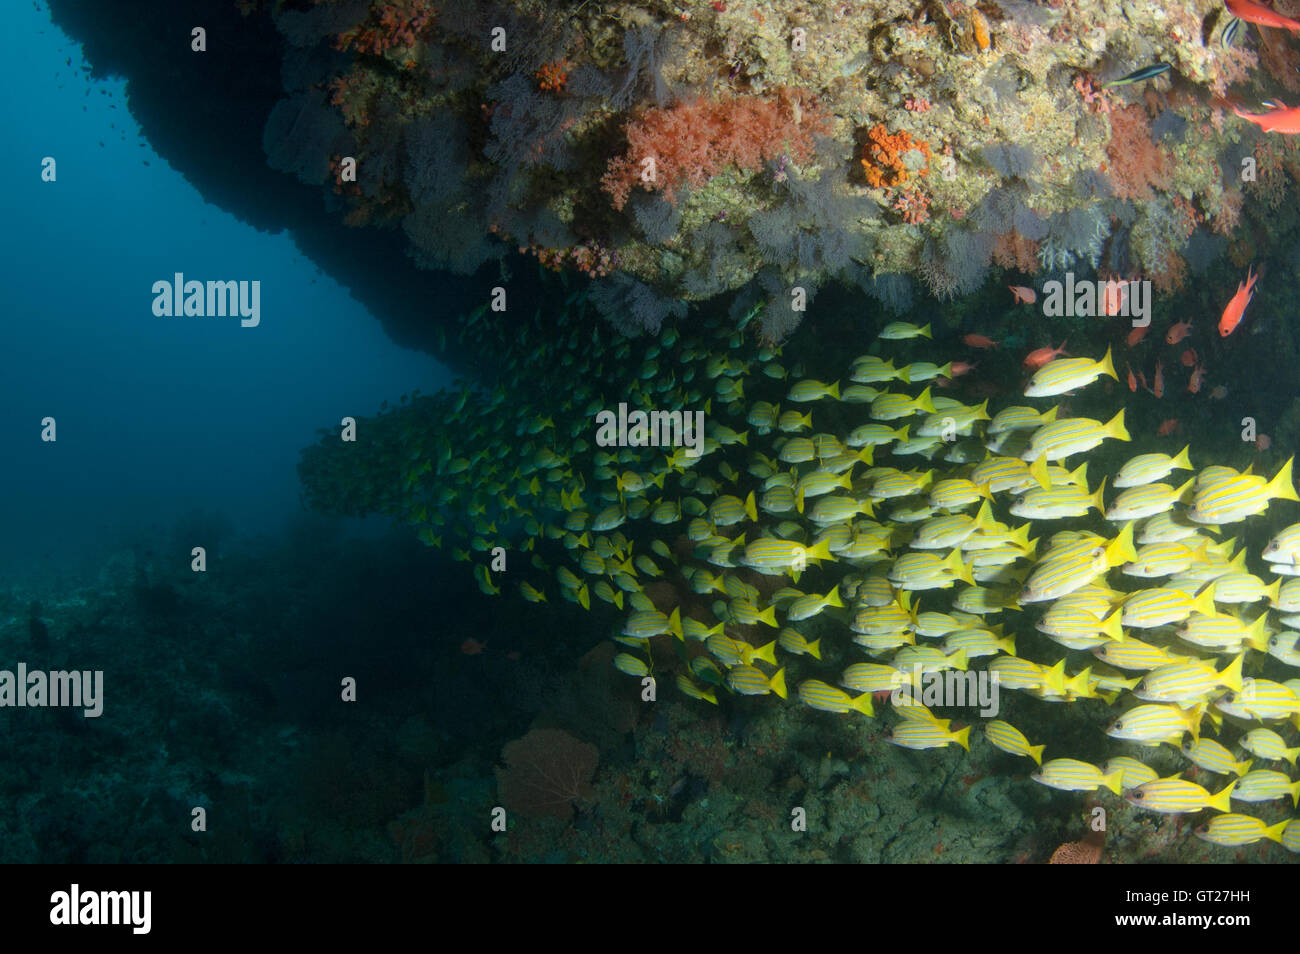 School of yellow snappers under a overhang in Kuda Rah Thila, South Ari Atoll, Maldives - Stock Image